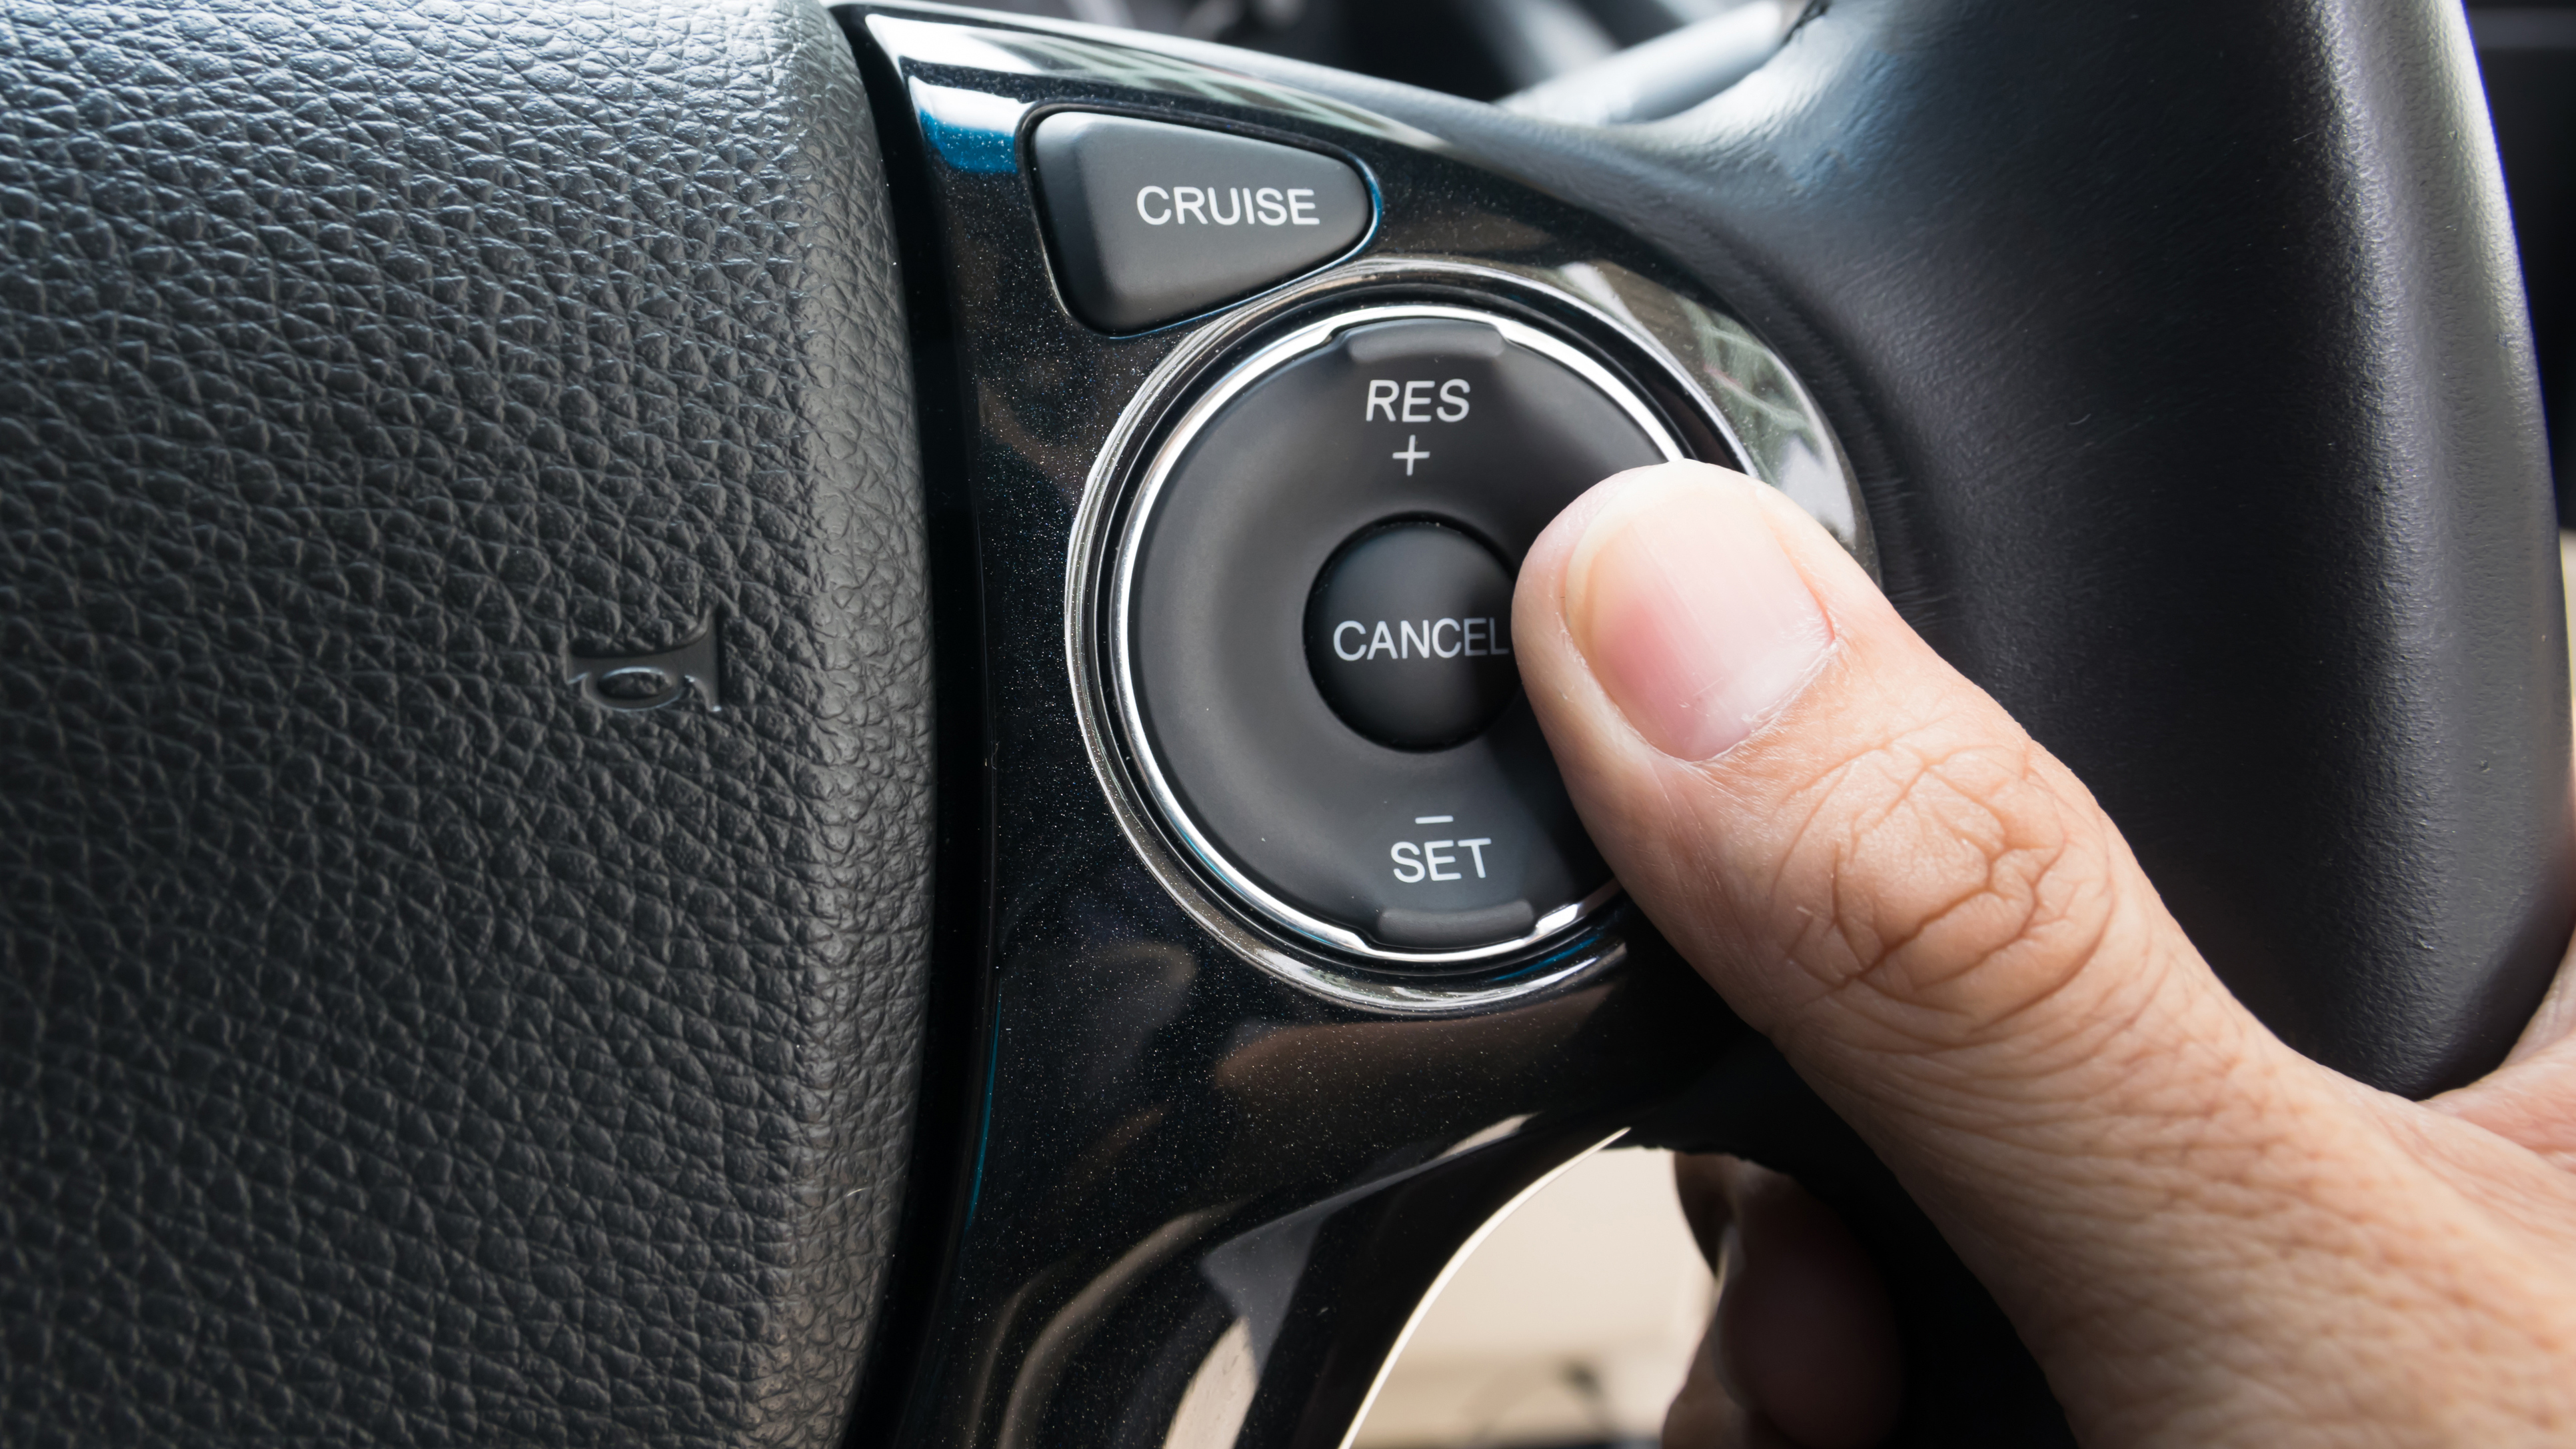 Cruise control in the car: what it is, the pros and cons 29